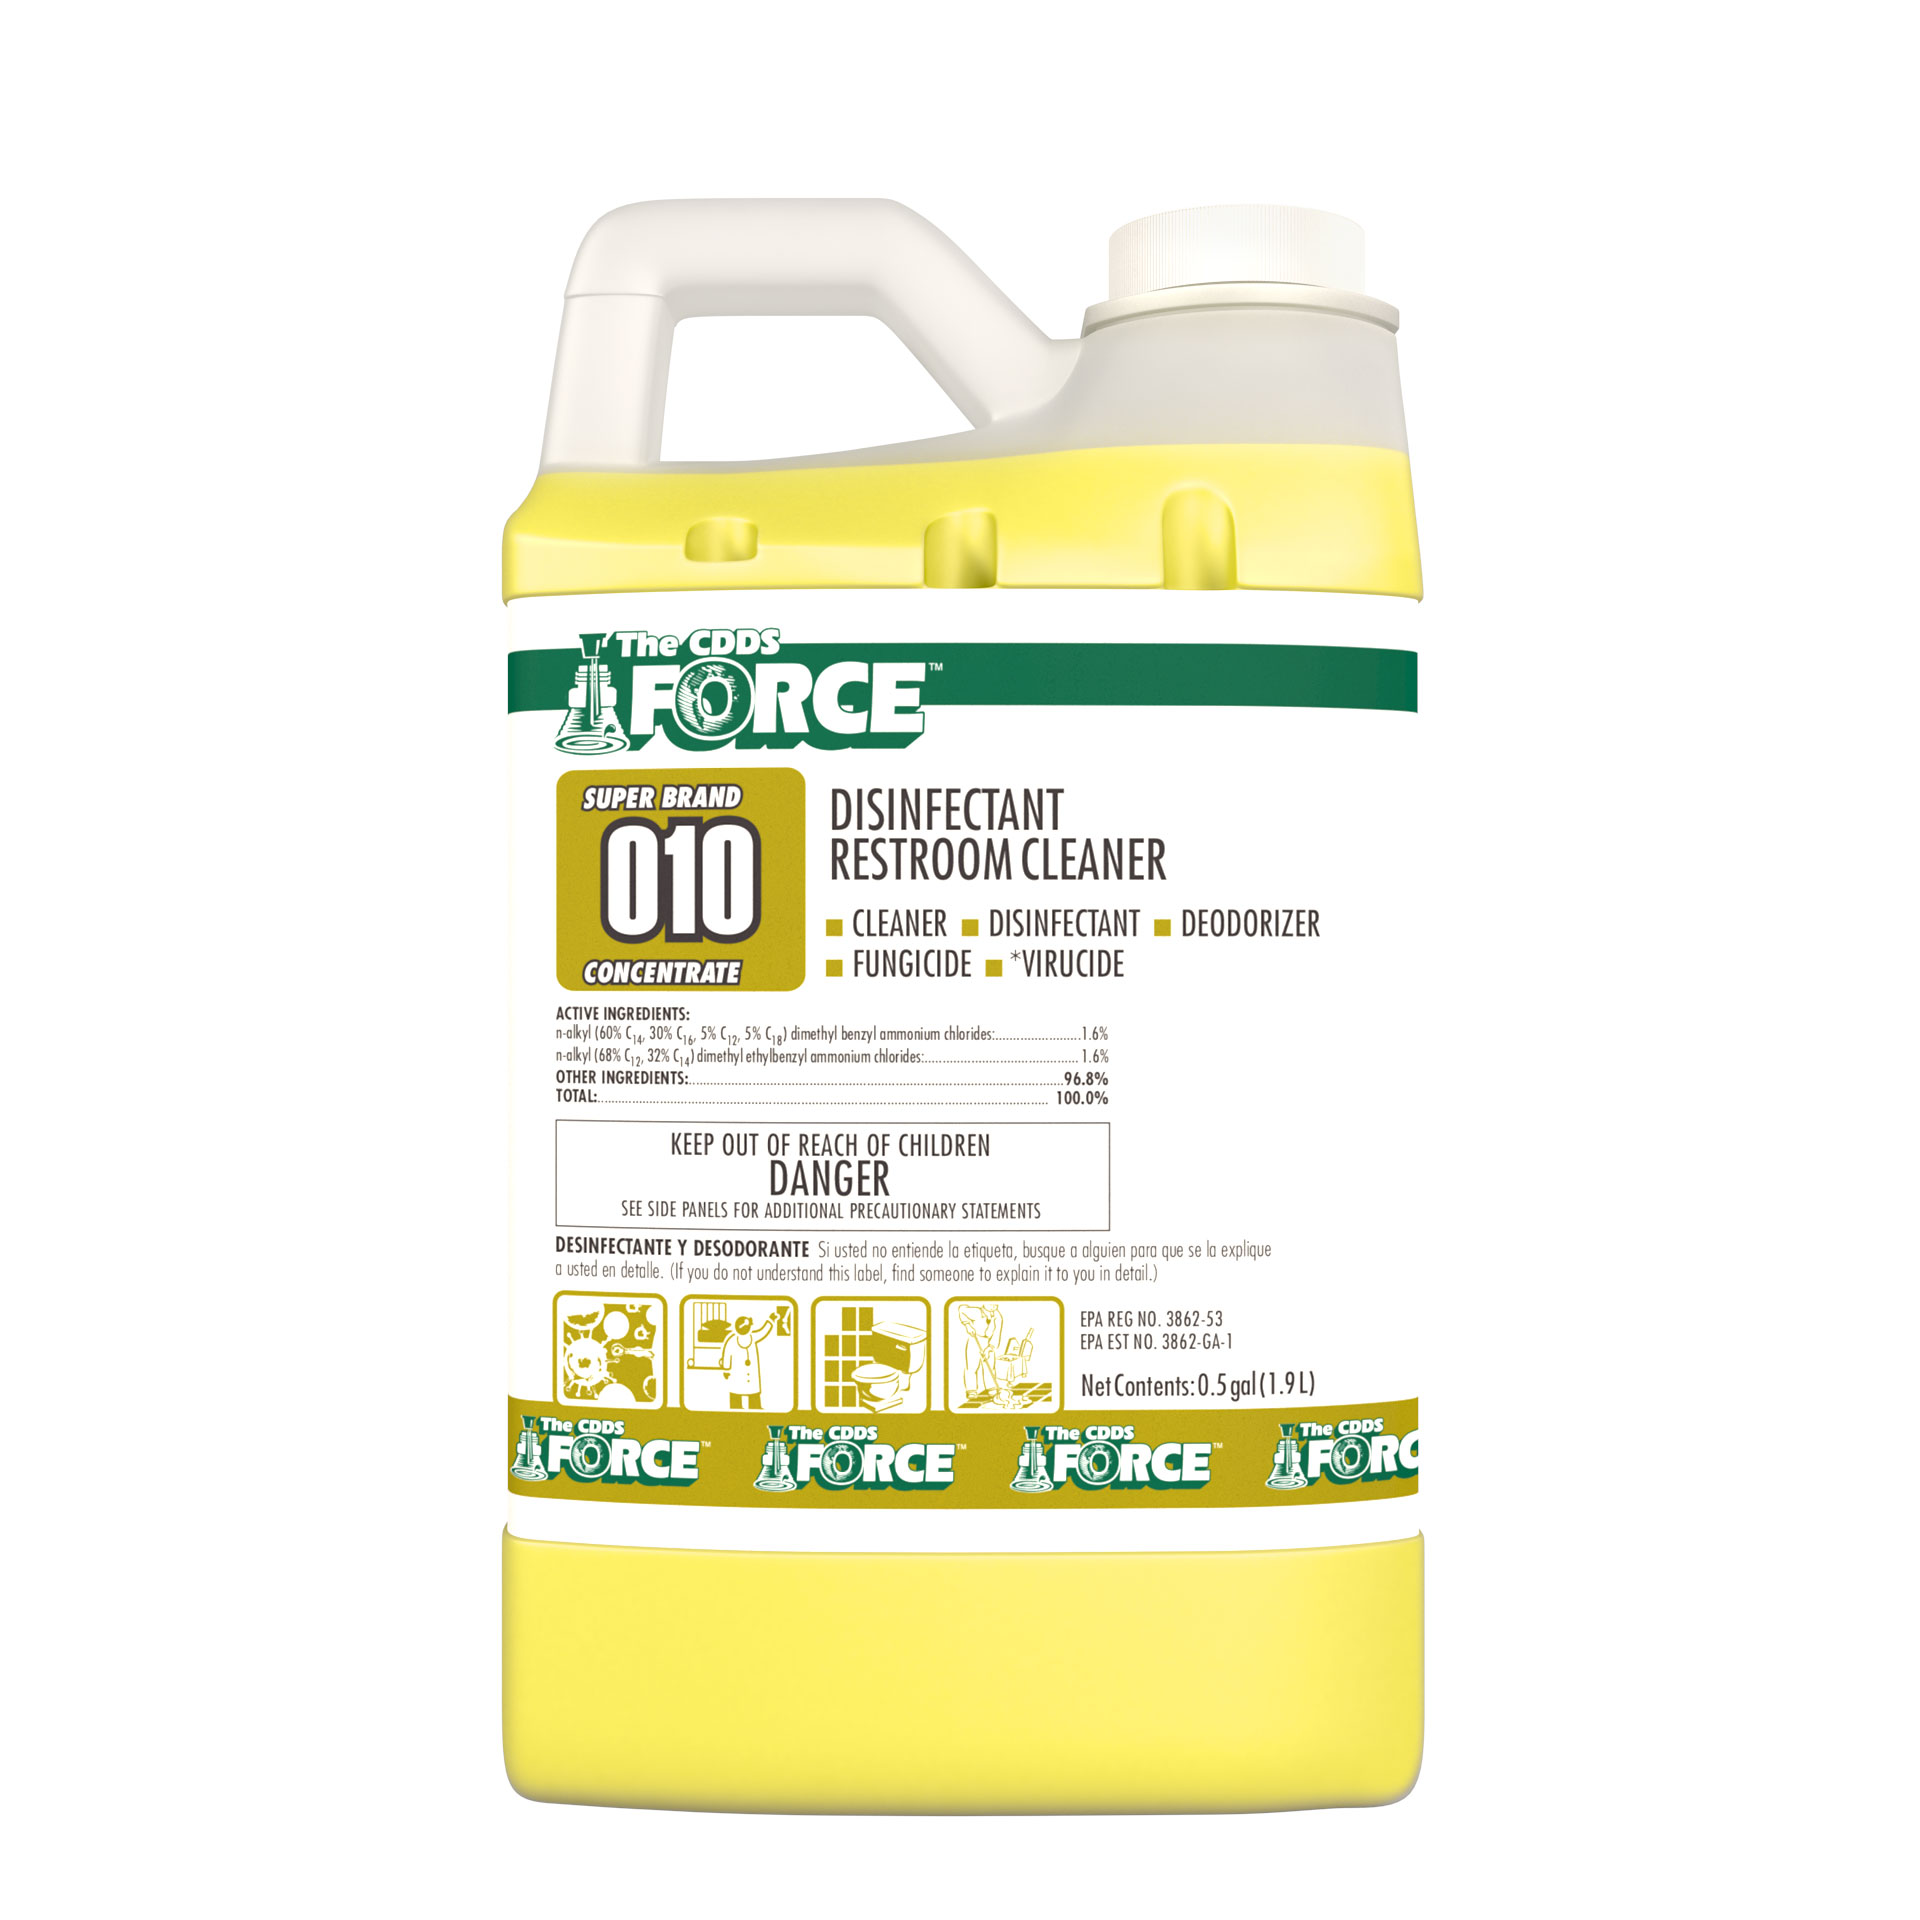 010 THE CDDS FORCE DISINFECT